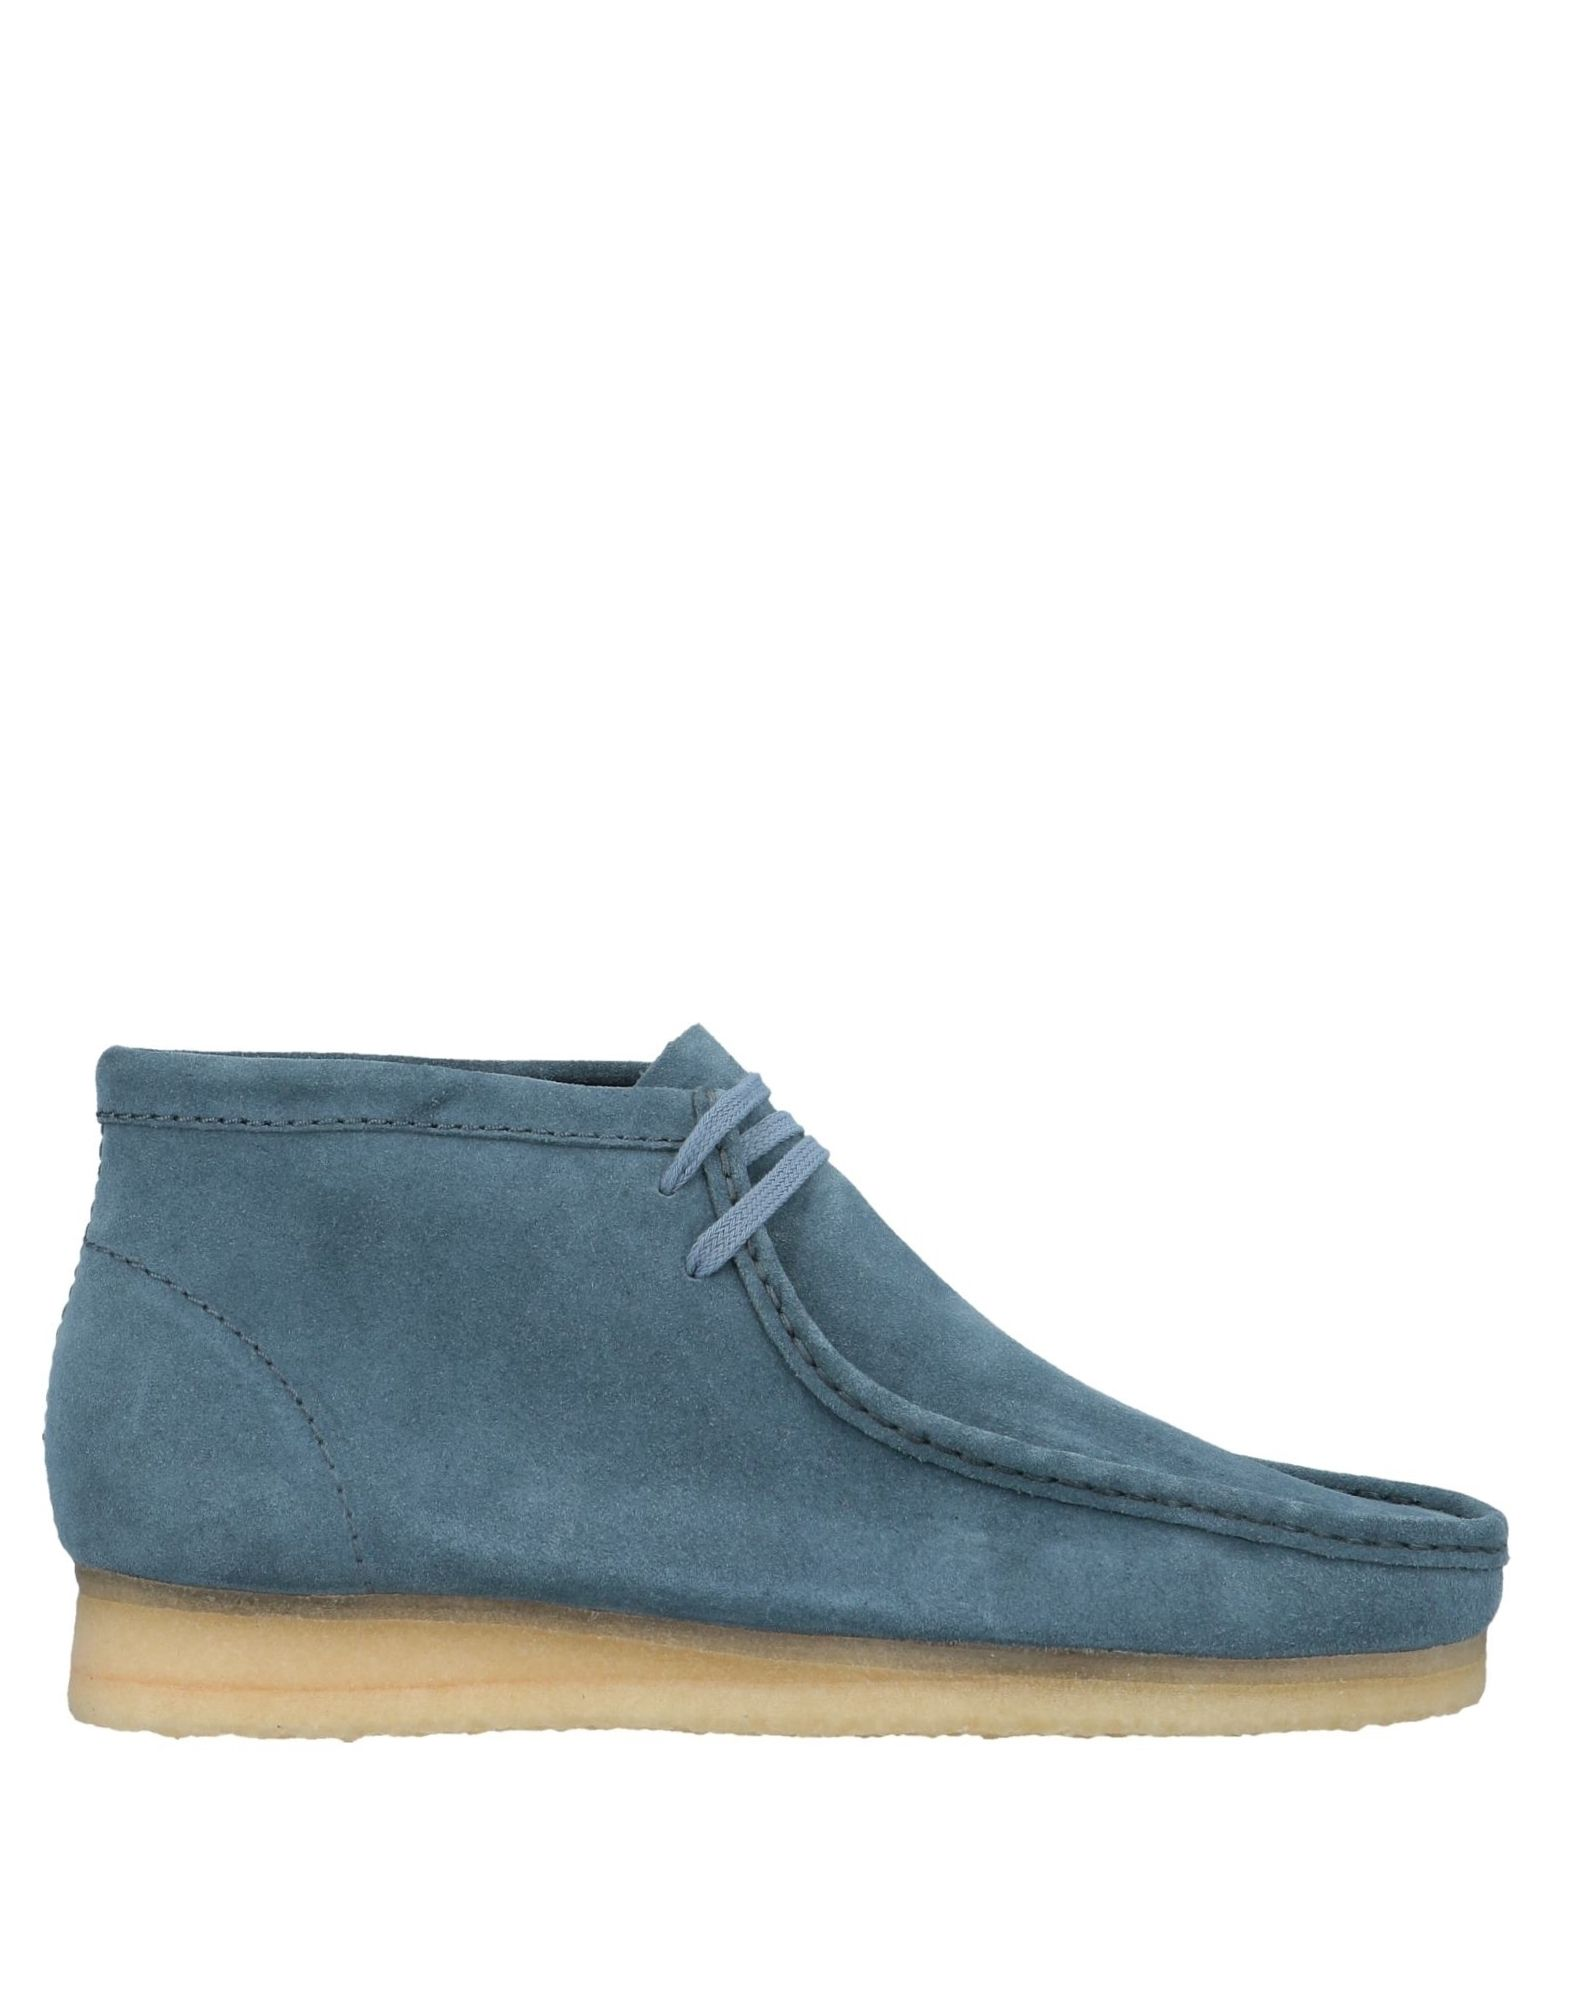 CLARKS ORIGINALS Полусапоги и высокие ботинки clarks полусапоги